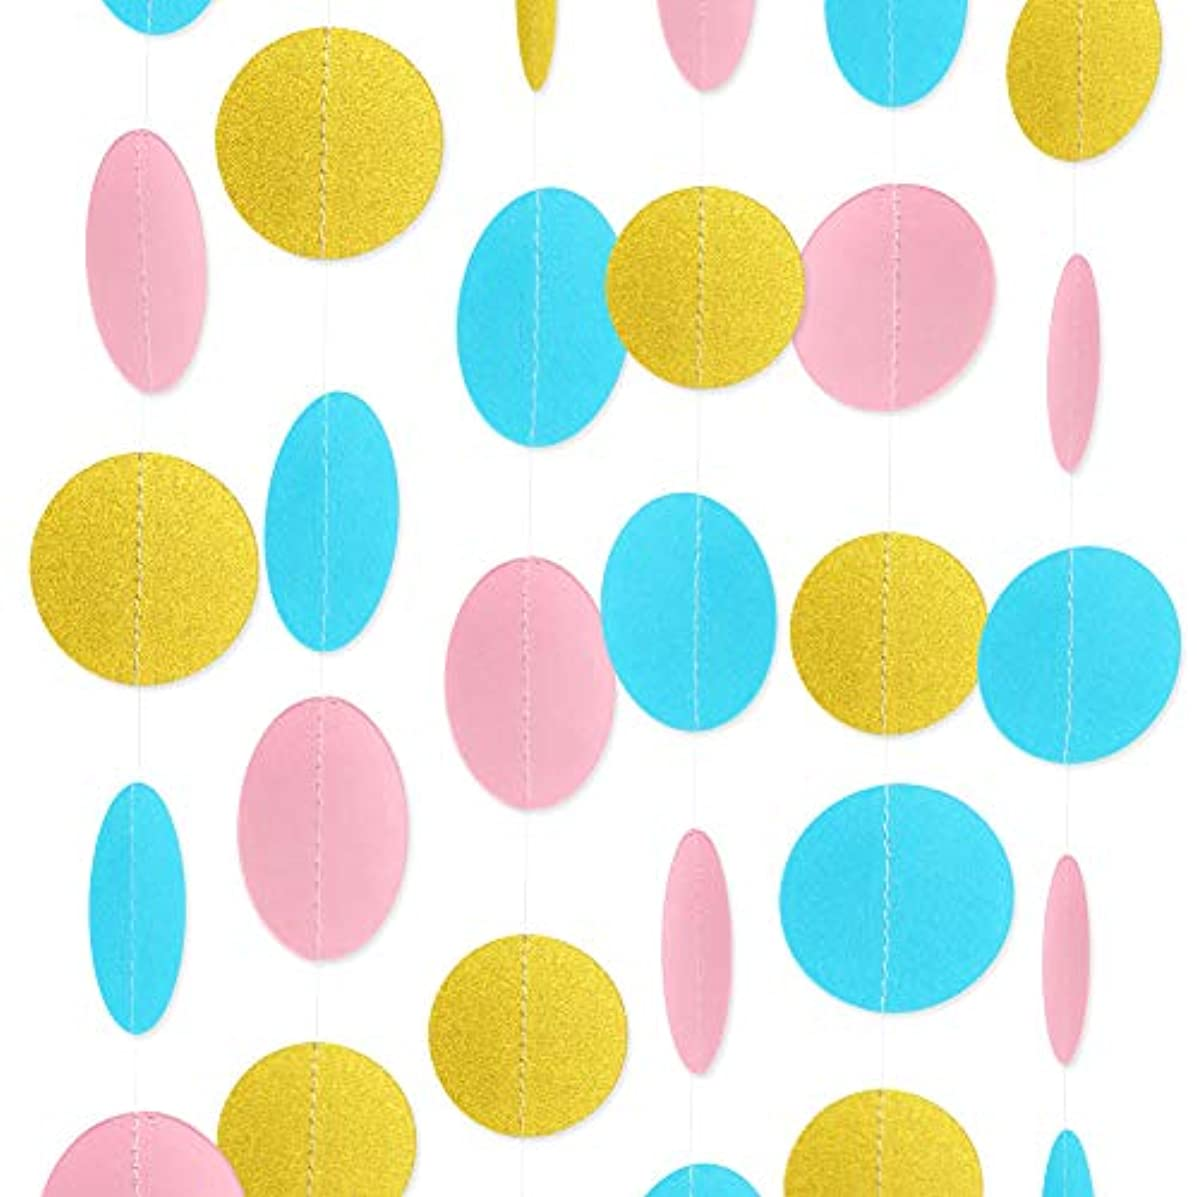 Paper Garland Circle Dots Streamer Backdrop Hanging Decorations for Birthday Baby Shower Wedding Decor - 5 Pack, 6.6 Feet Each (Pink,Blue,Gold)